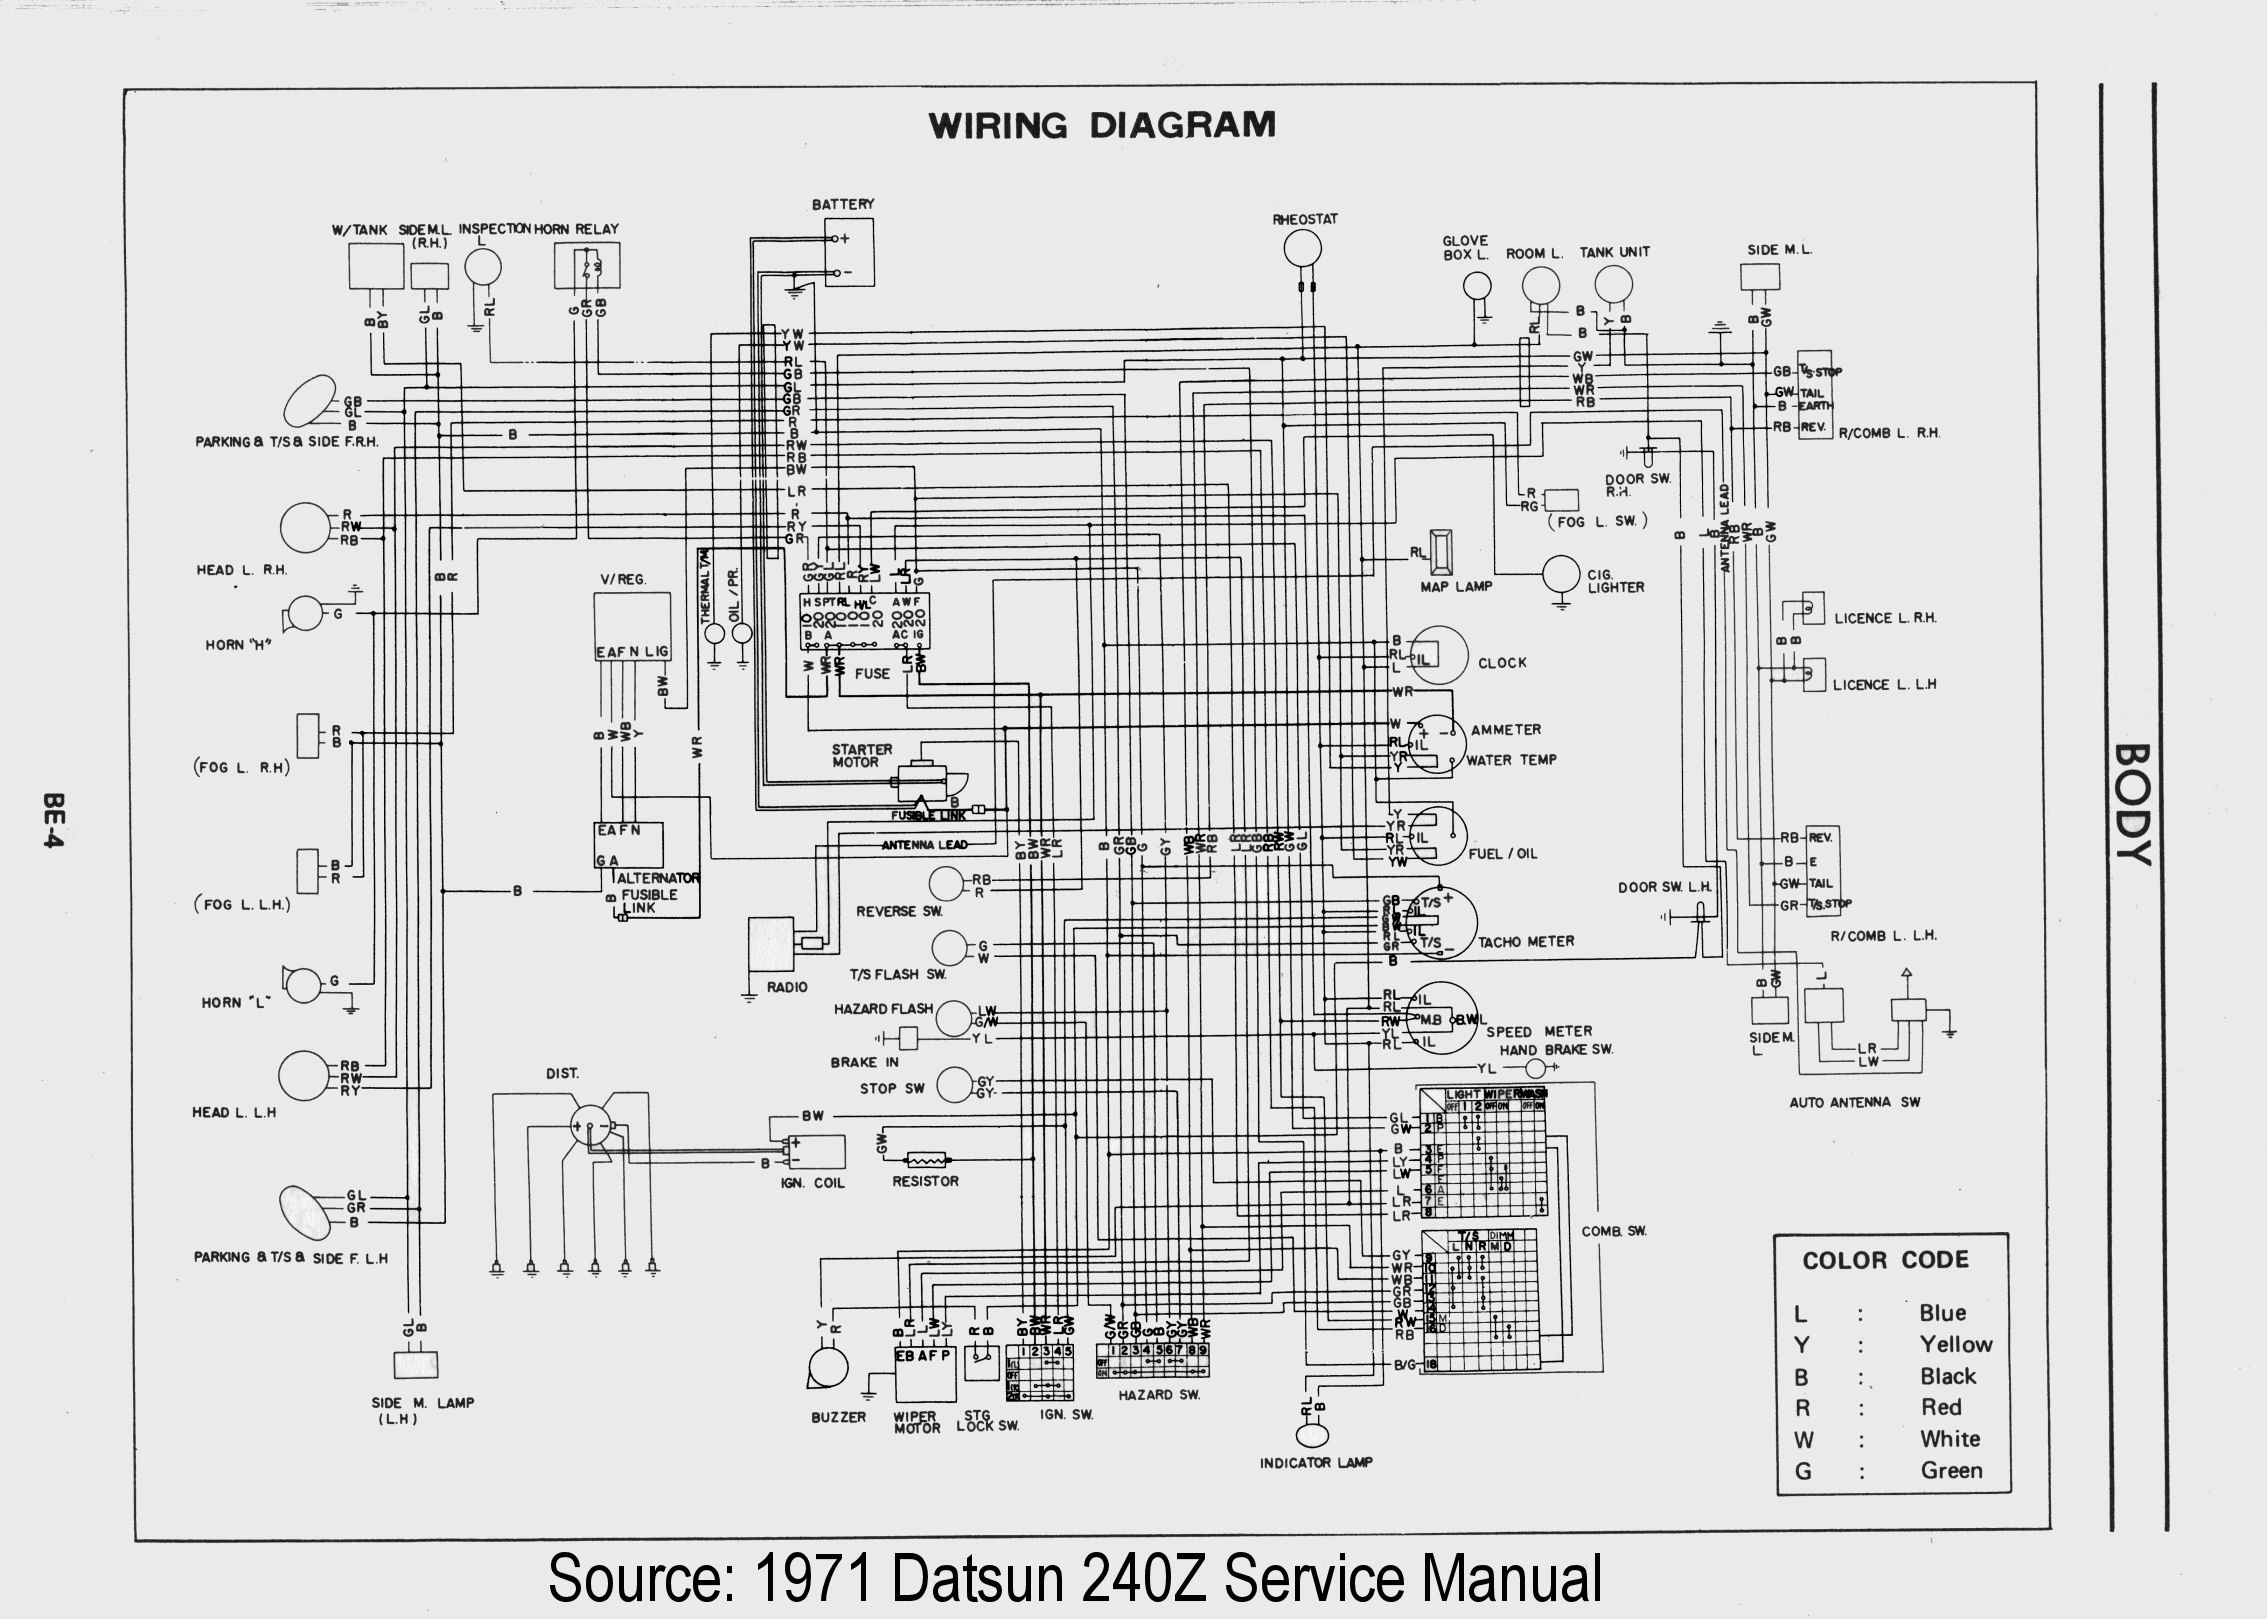 Heli Forklift Wiring Diagram also P 0996b43f80376ceb moreover Body Temperature Negative Feedback System Wiring Diagrams as well 1960 Studebaker Lark Wiring Diagram moreover Diagram view. on nissan electrical diagrams